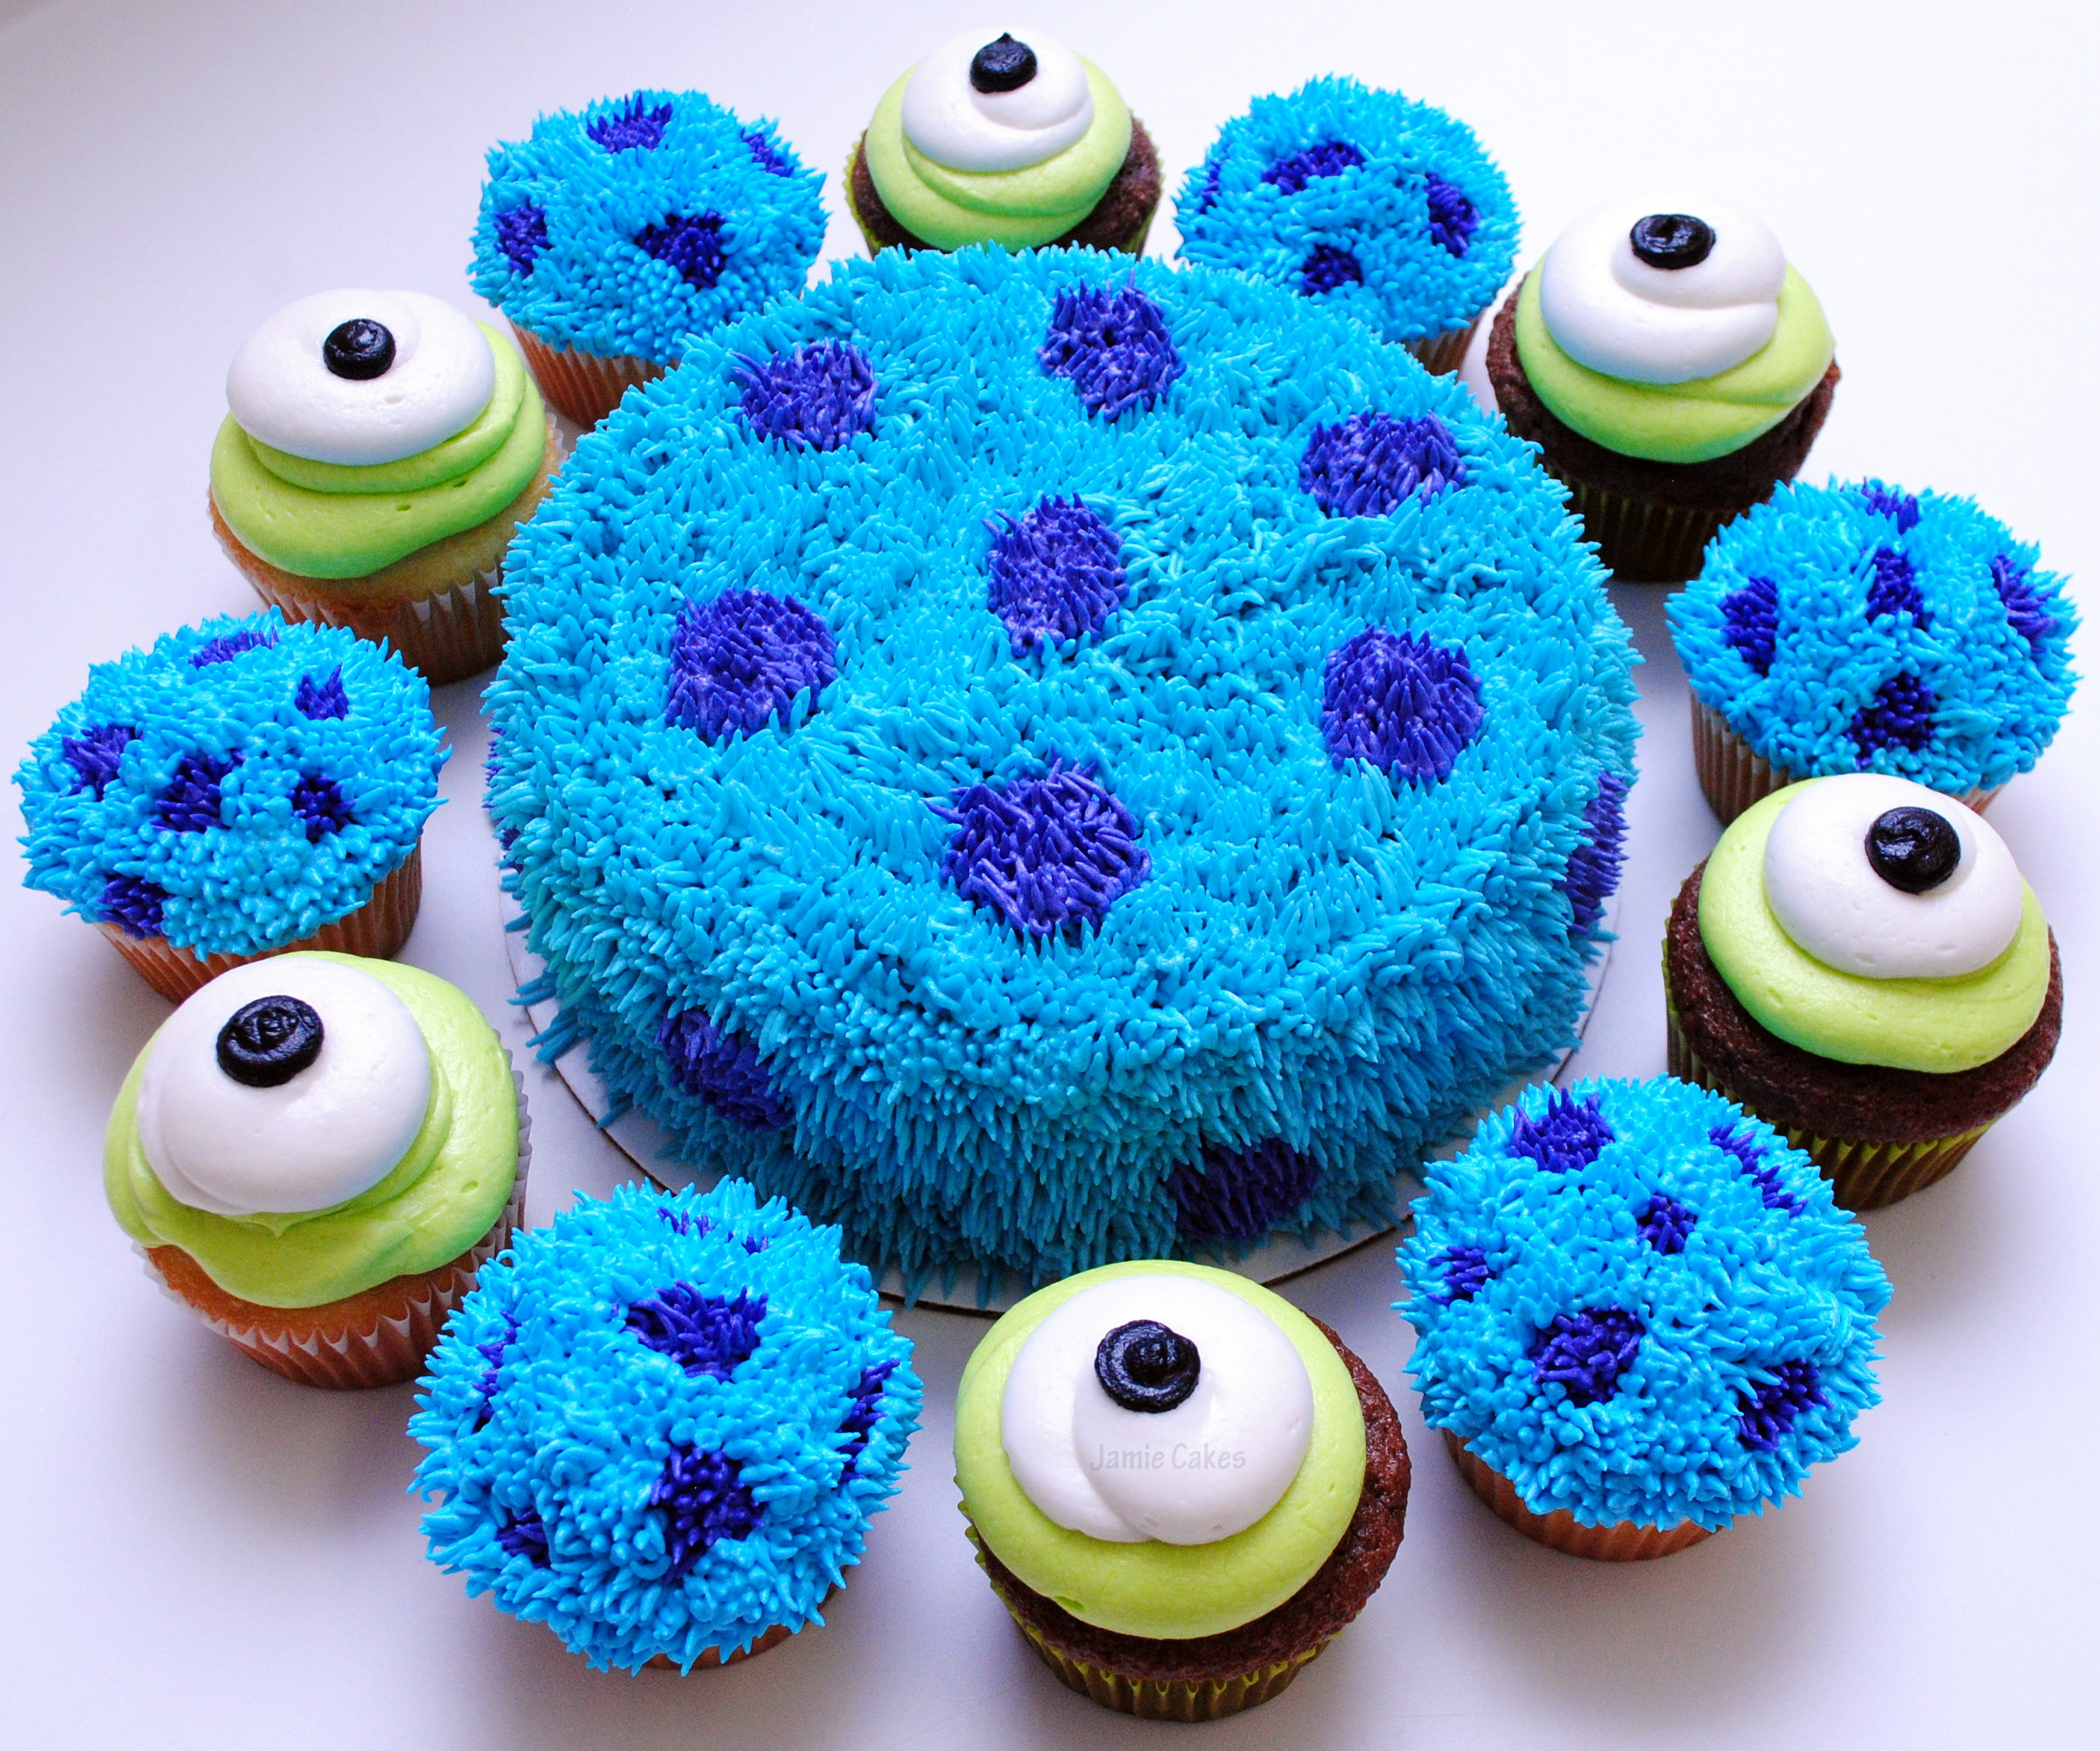 Fantastic Monsters Inc Cake And Cupcakes Jamie Cakes Personalised Birthday Cards Epsylily Jamesorg